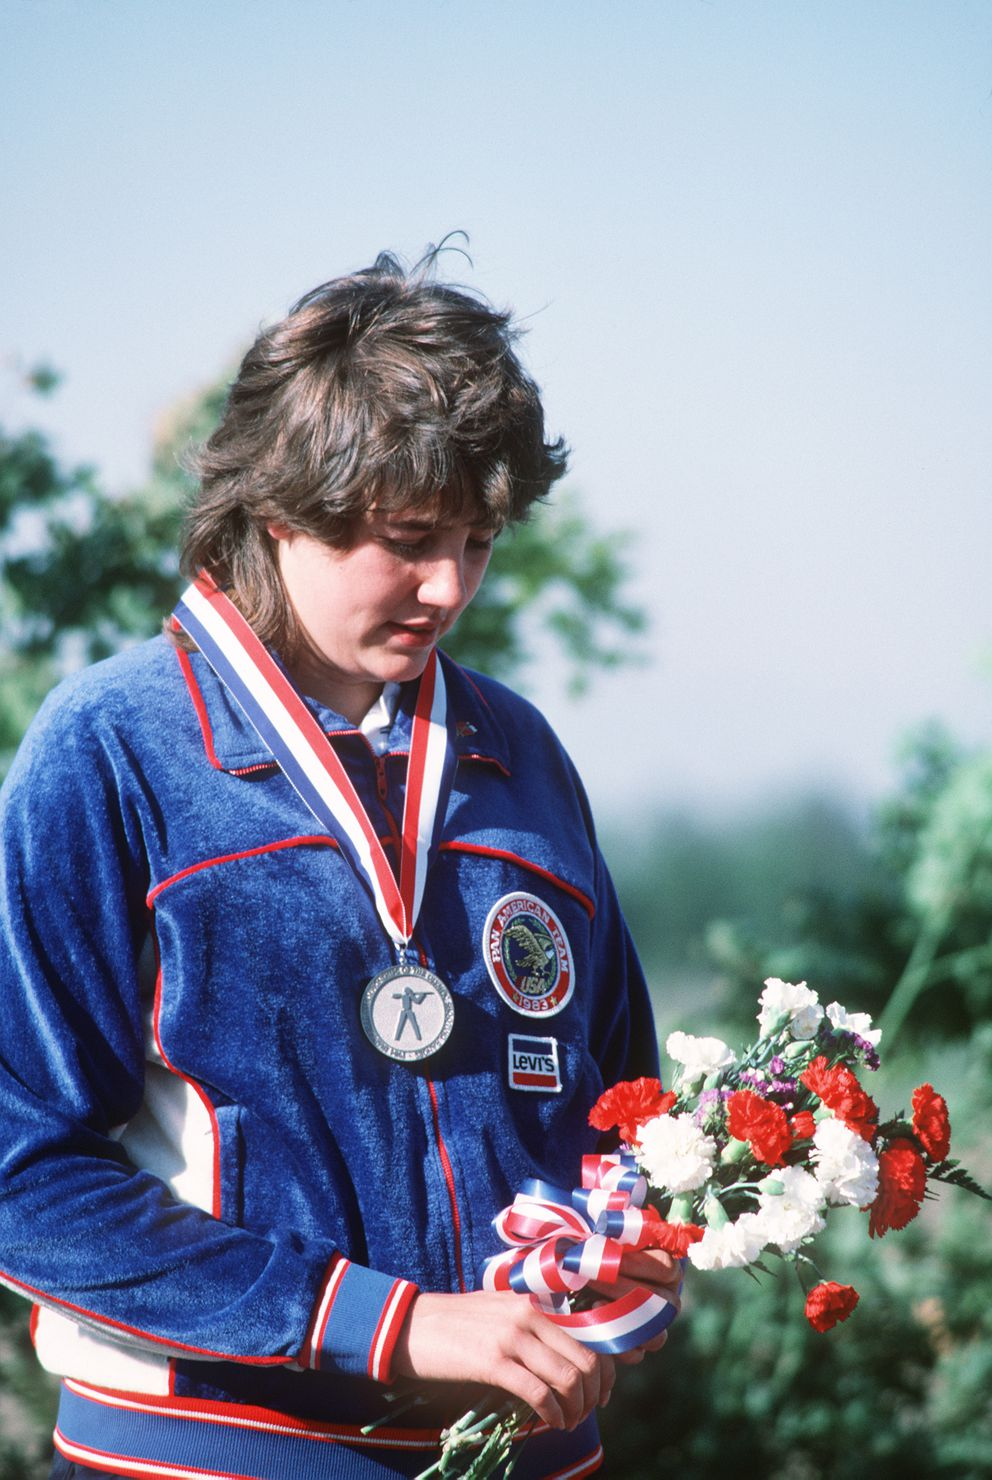 Pat Pitney was 18 years old when she won the gold medal in women's air rifle at the 1984 Olympics in Los Angeles. (Photo courtesy Pat Pitney)